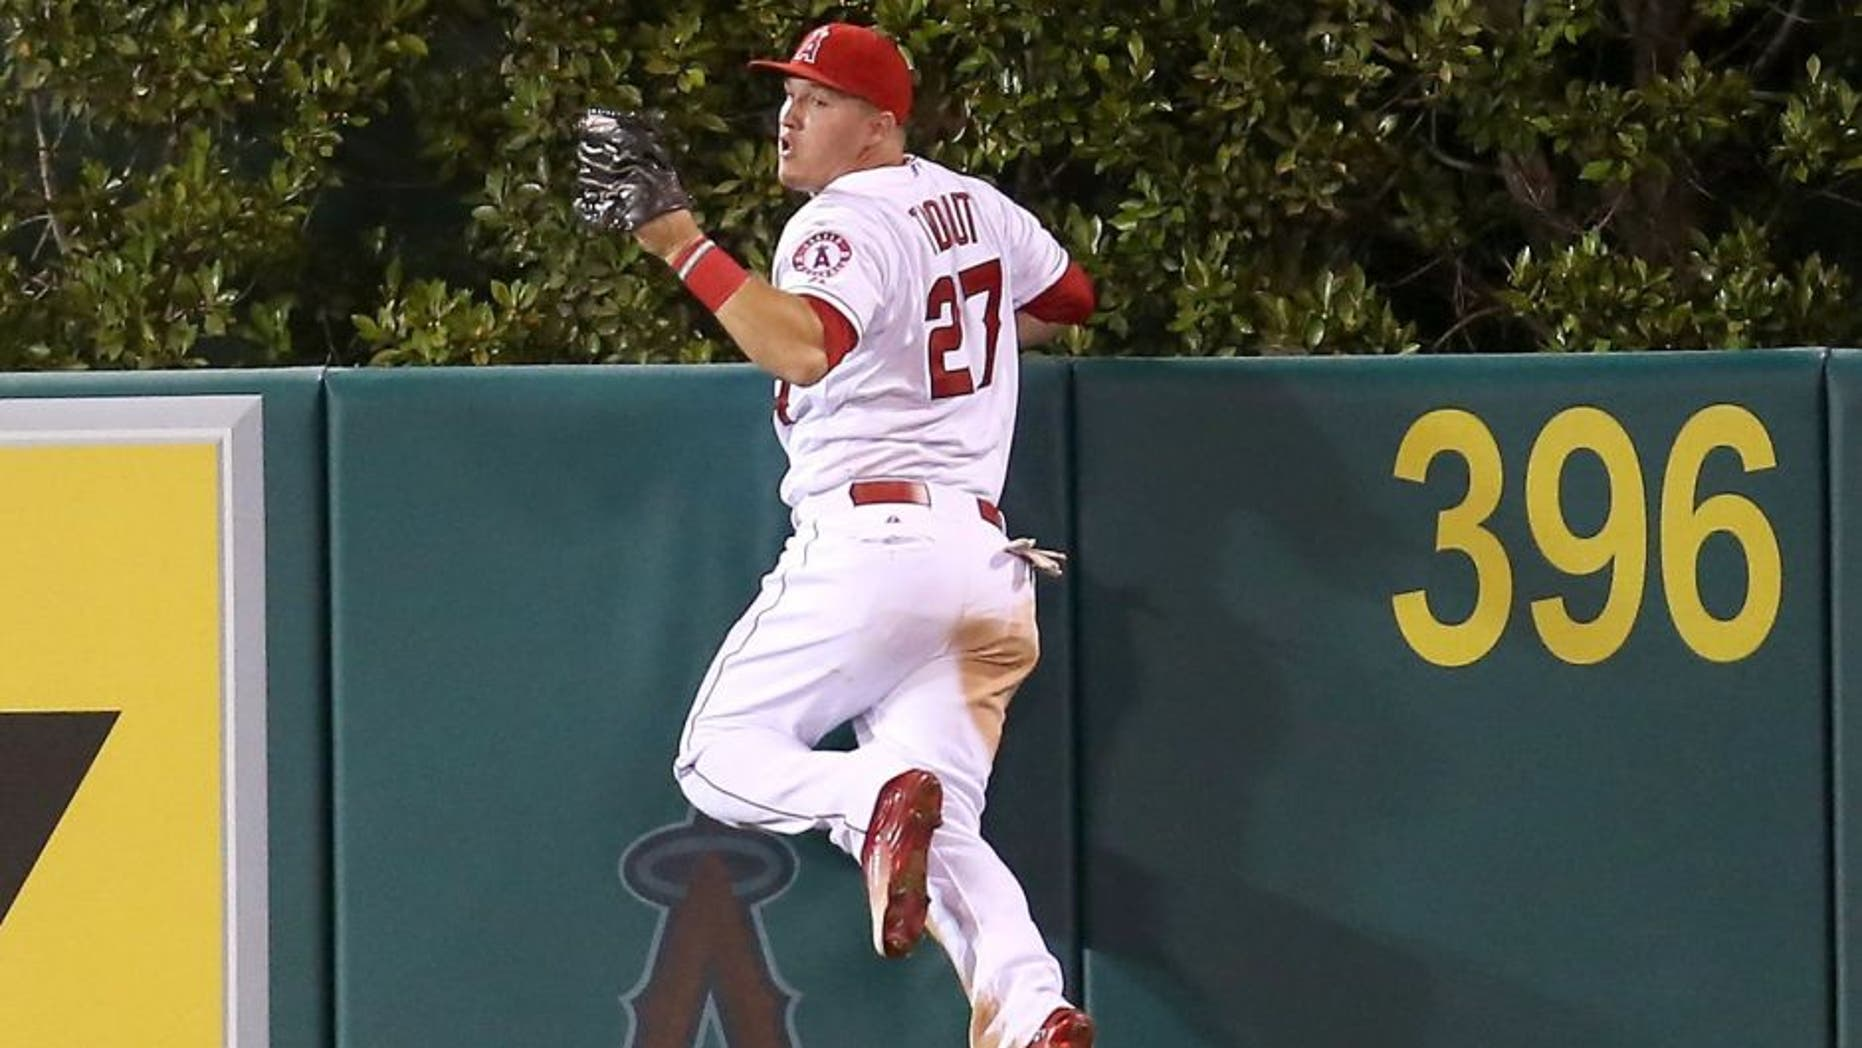 ANAHEIM, CA - SEPTEMBER 26: Center fielder Mike Trout #27 of the Los Angeles Angels of Anaheim reacts after jumping at the wall and making the catch to take a home away from Jesus Montero of the Seattle Mariners in the fourth inning at Angel Stadium of Anaheim on September 26, 2015 in Anaheim, California. (Photo by Stephen Dunn/Getty Images)